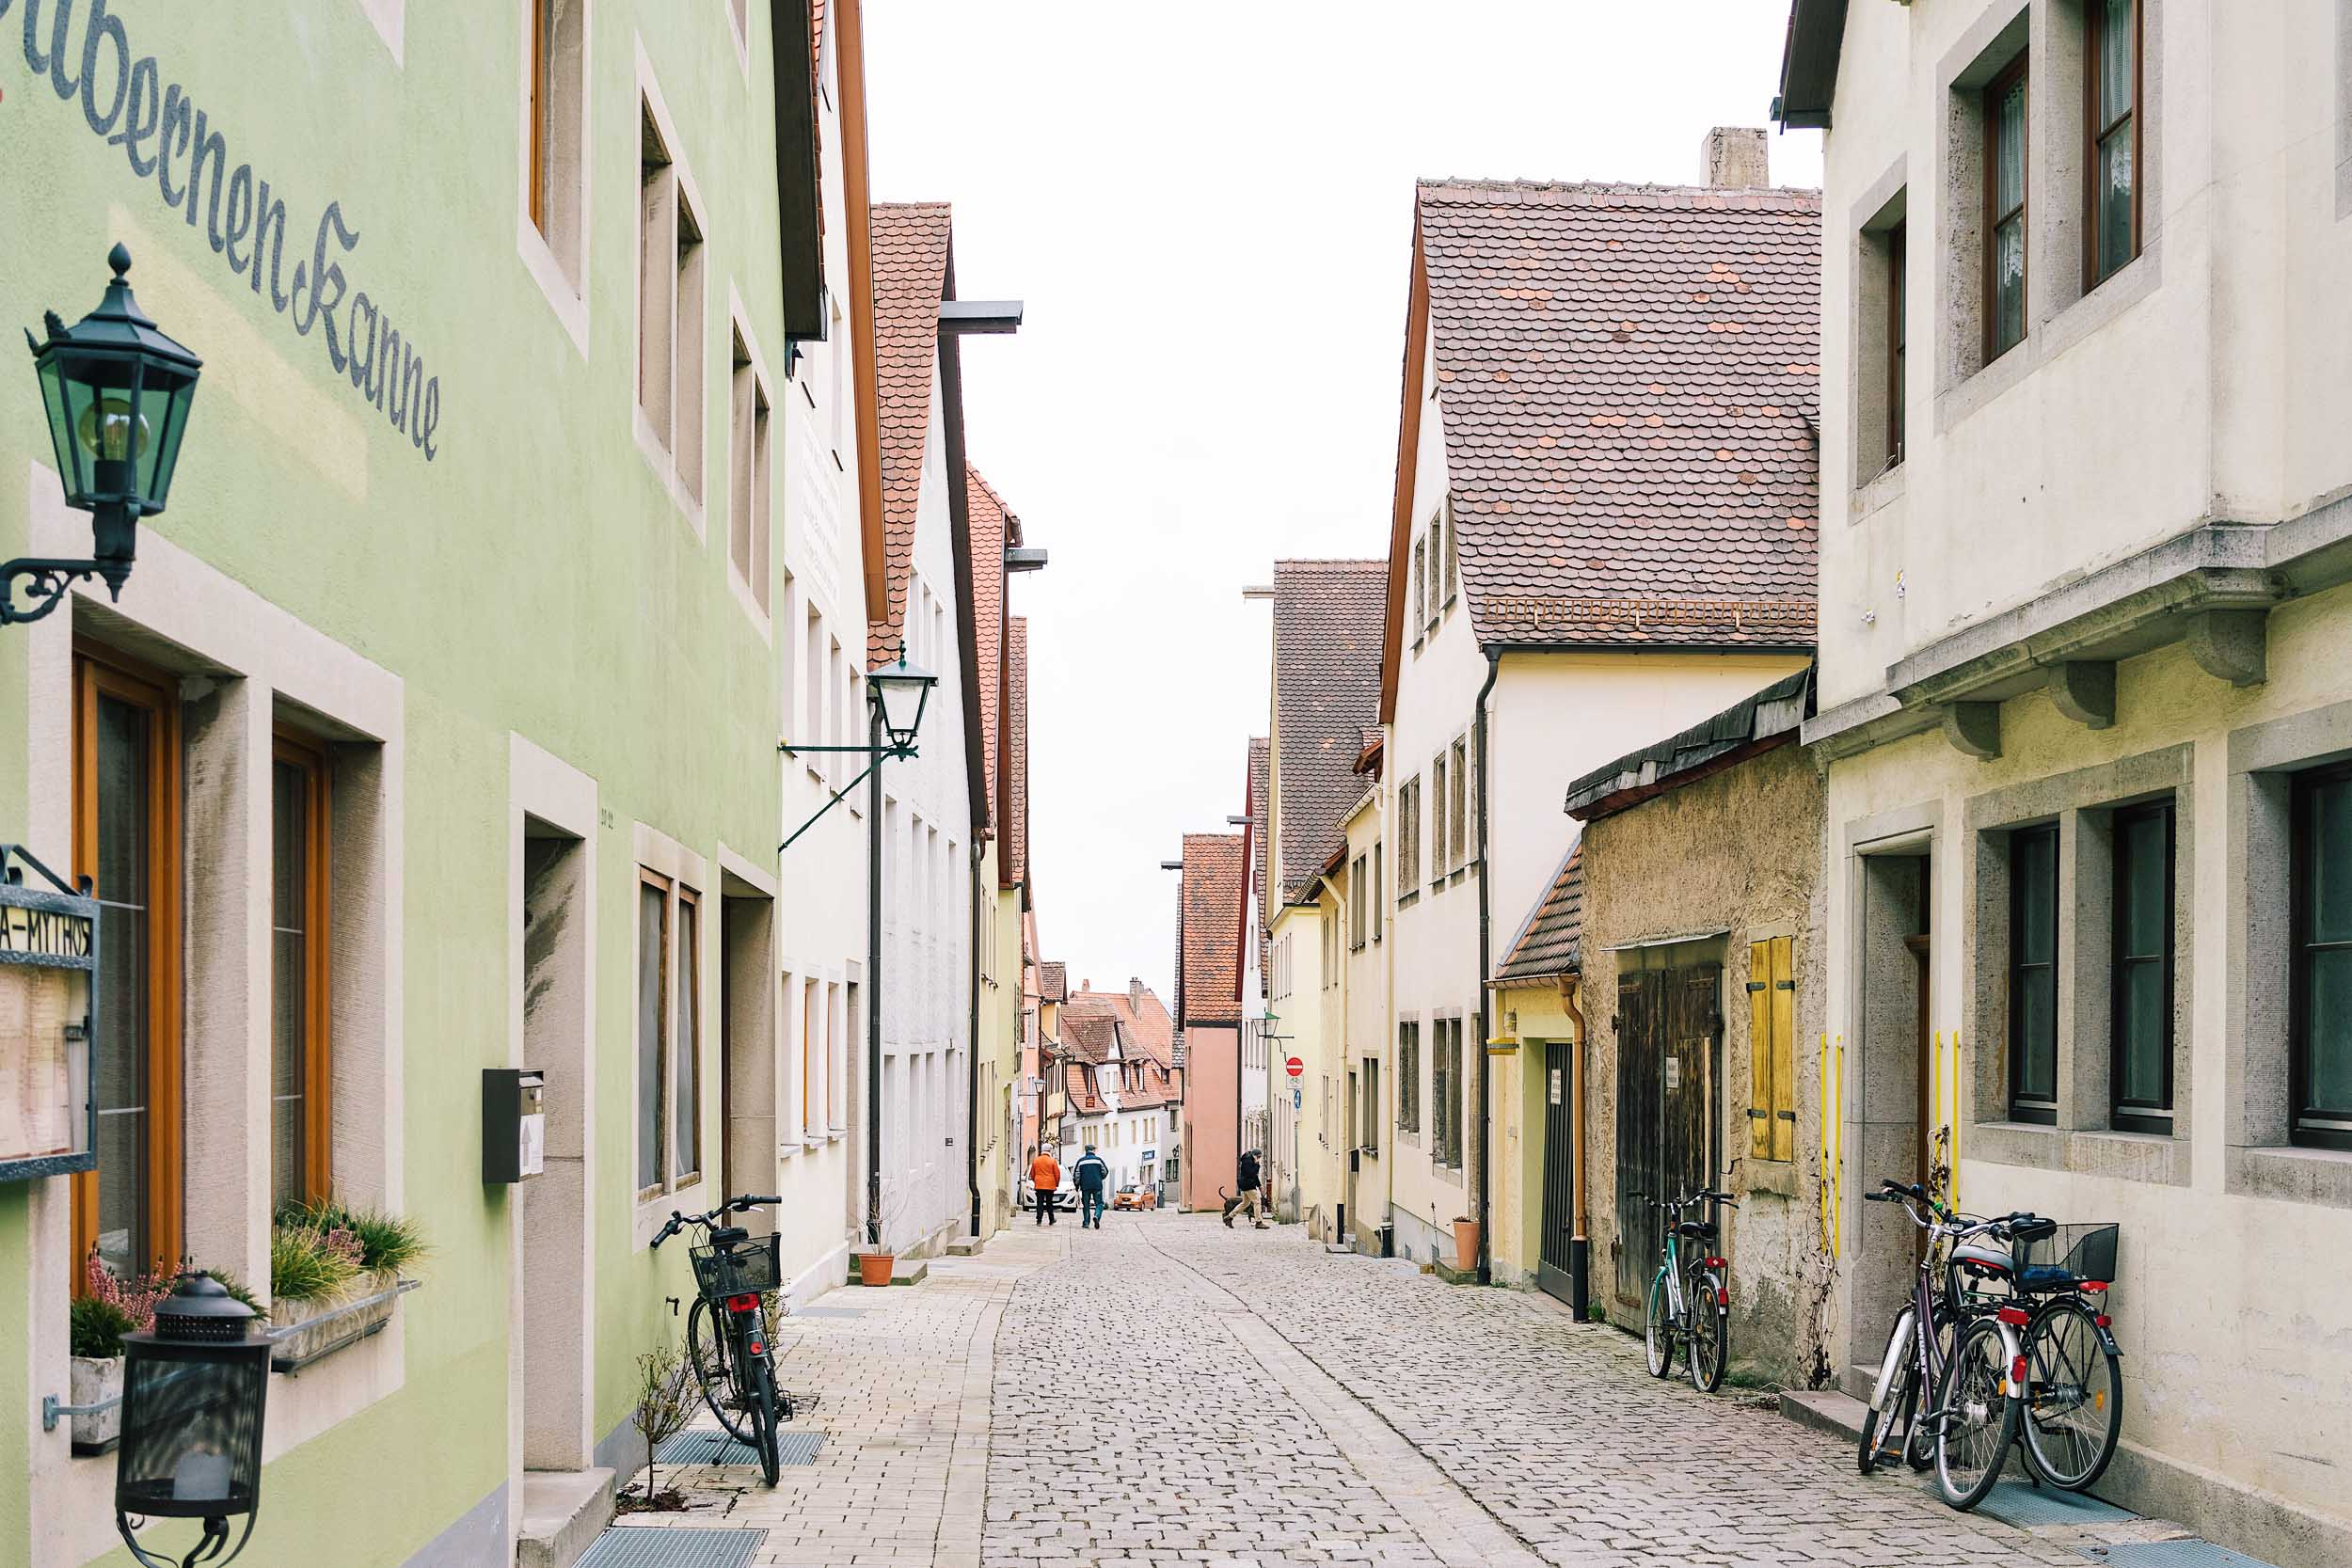 A picturesque street in Rothenburg